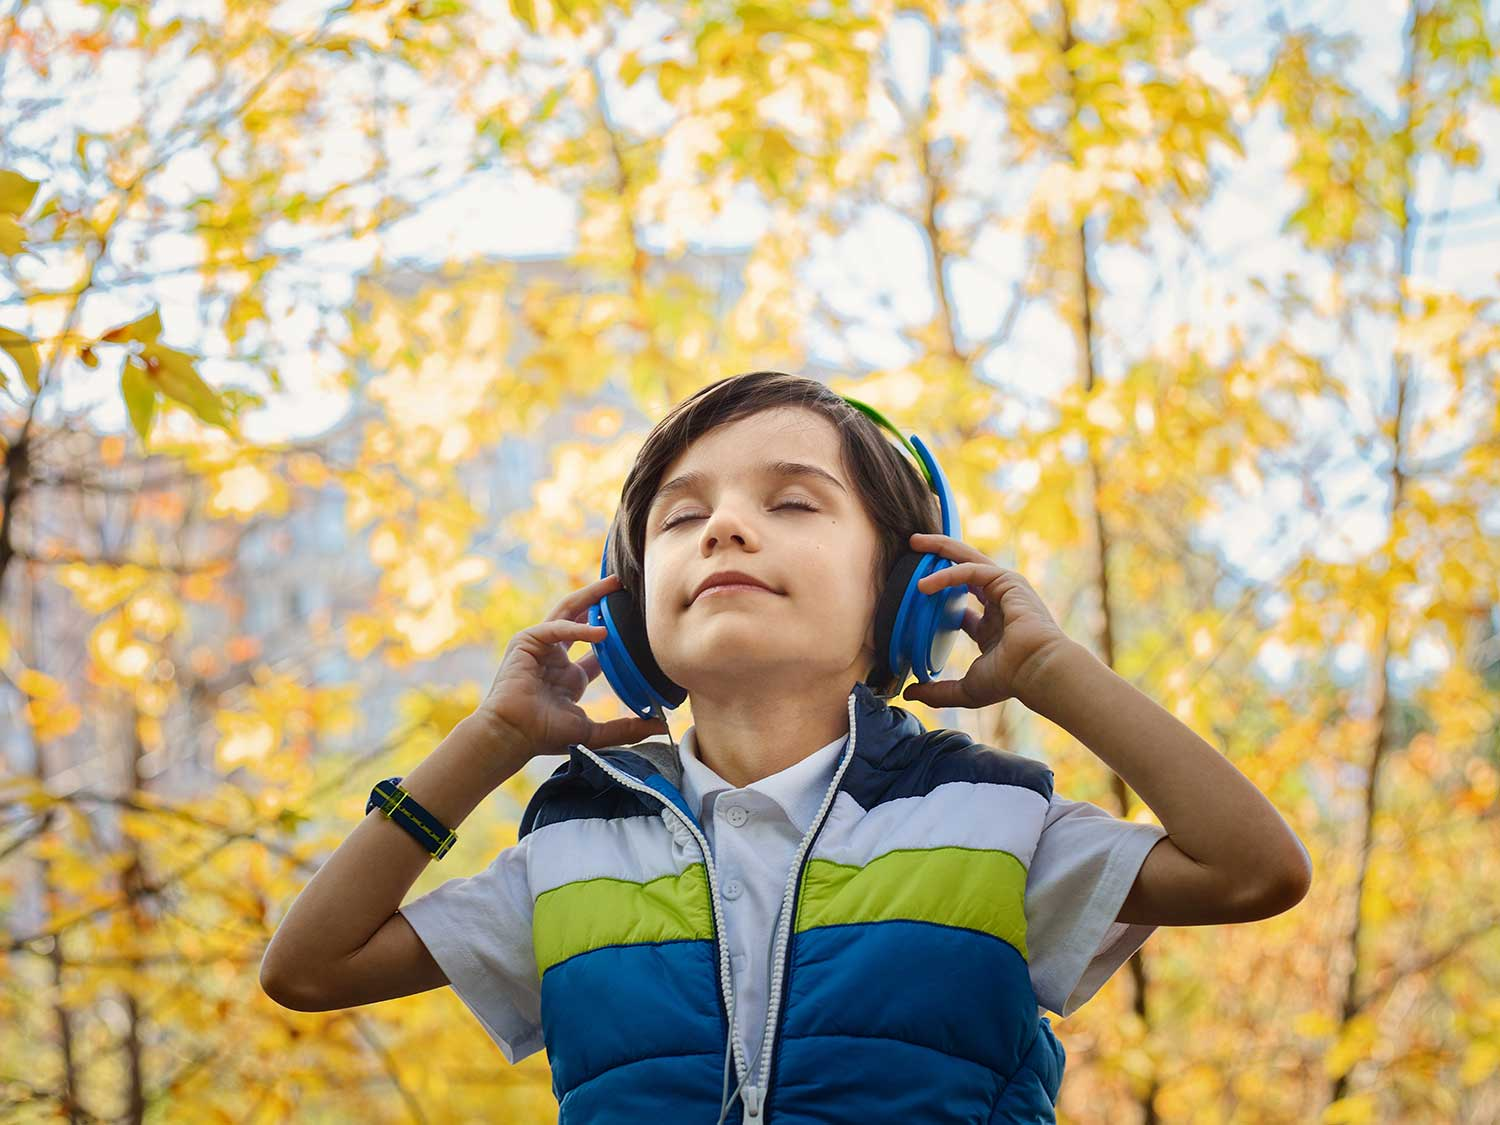 Boy listening to music outdoors with headset.